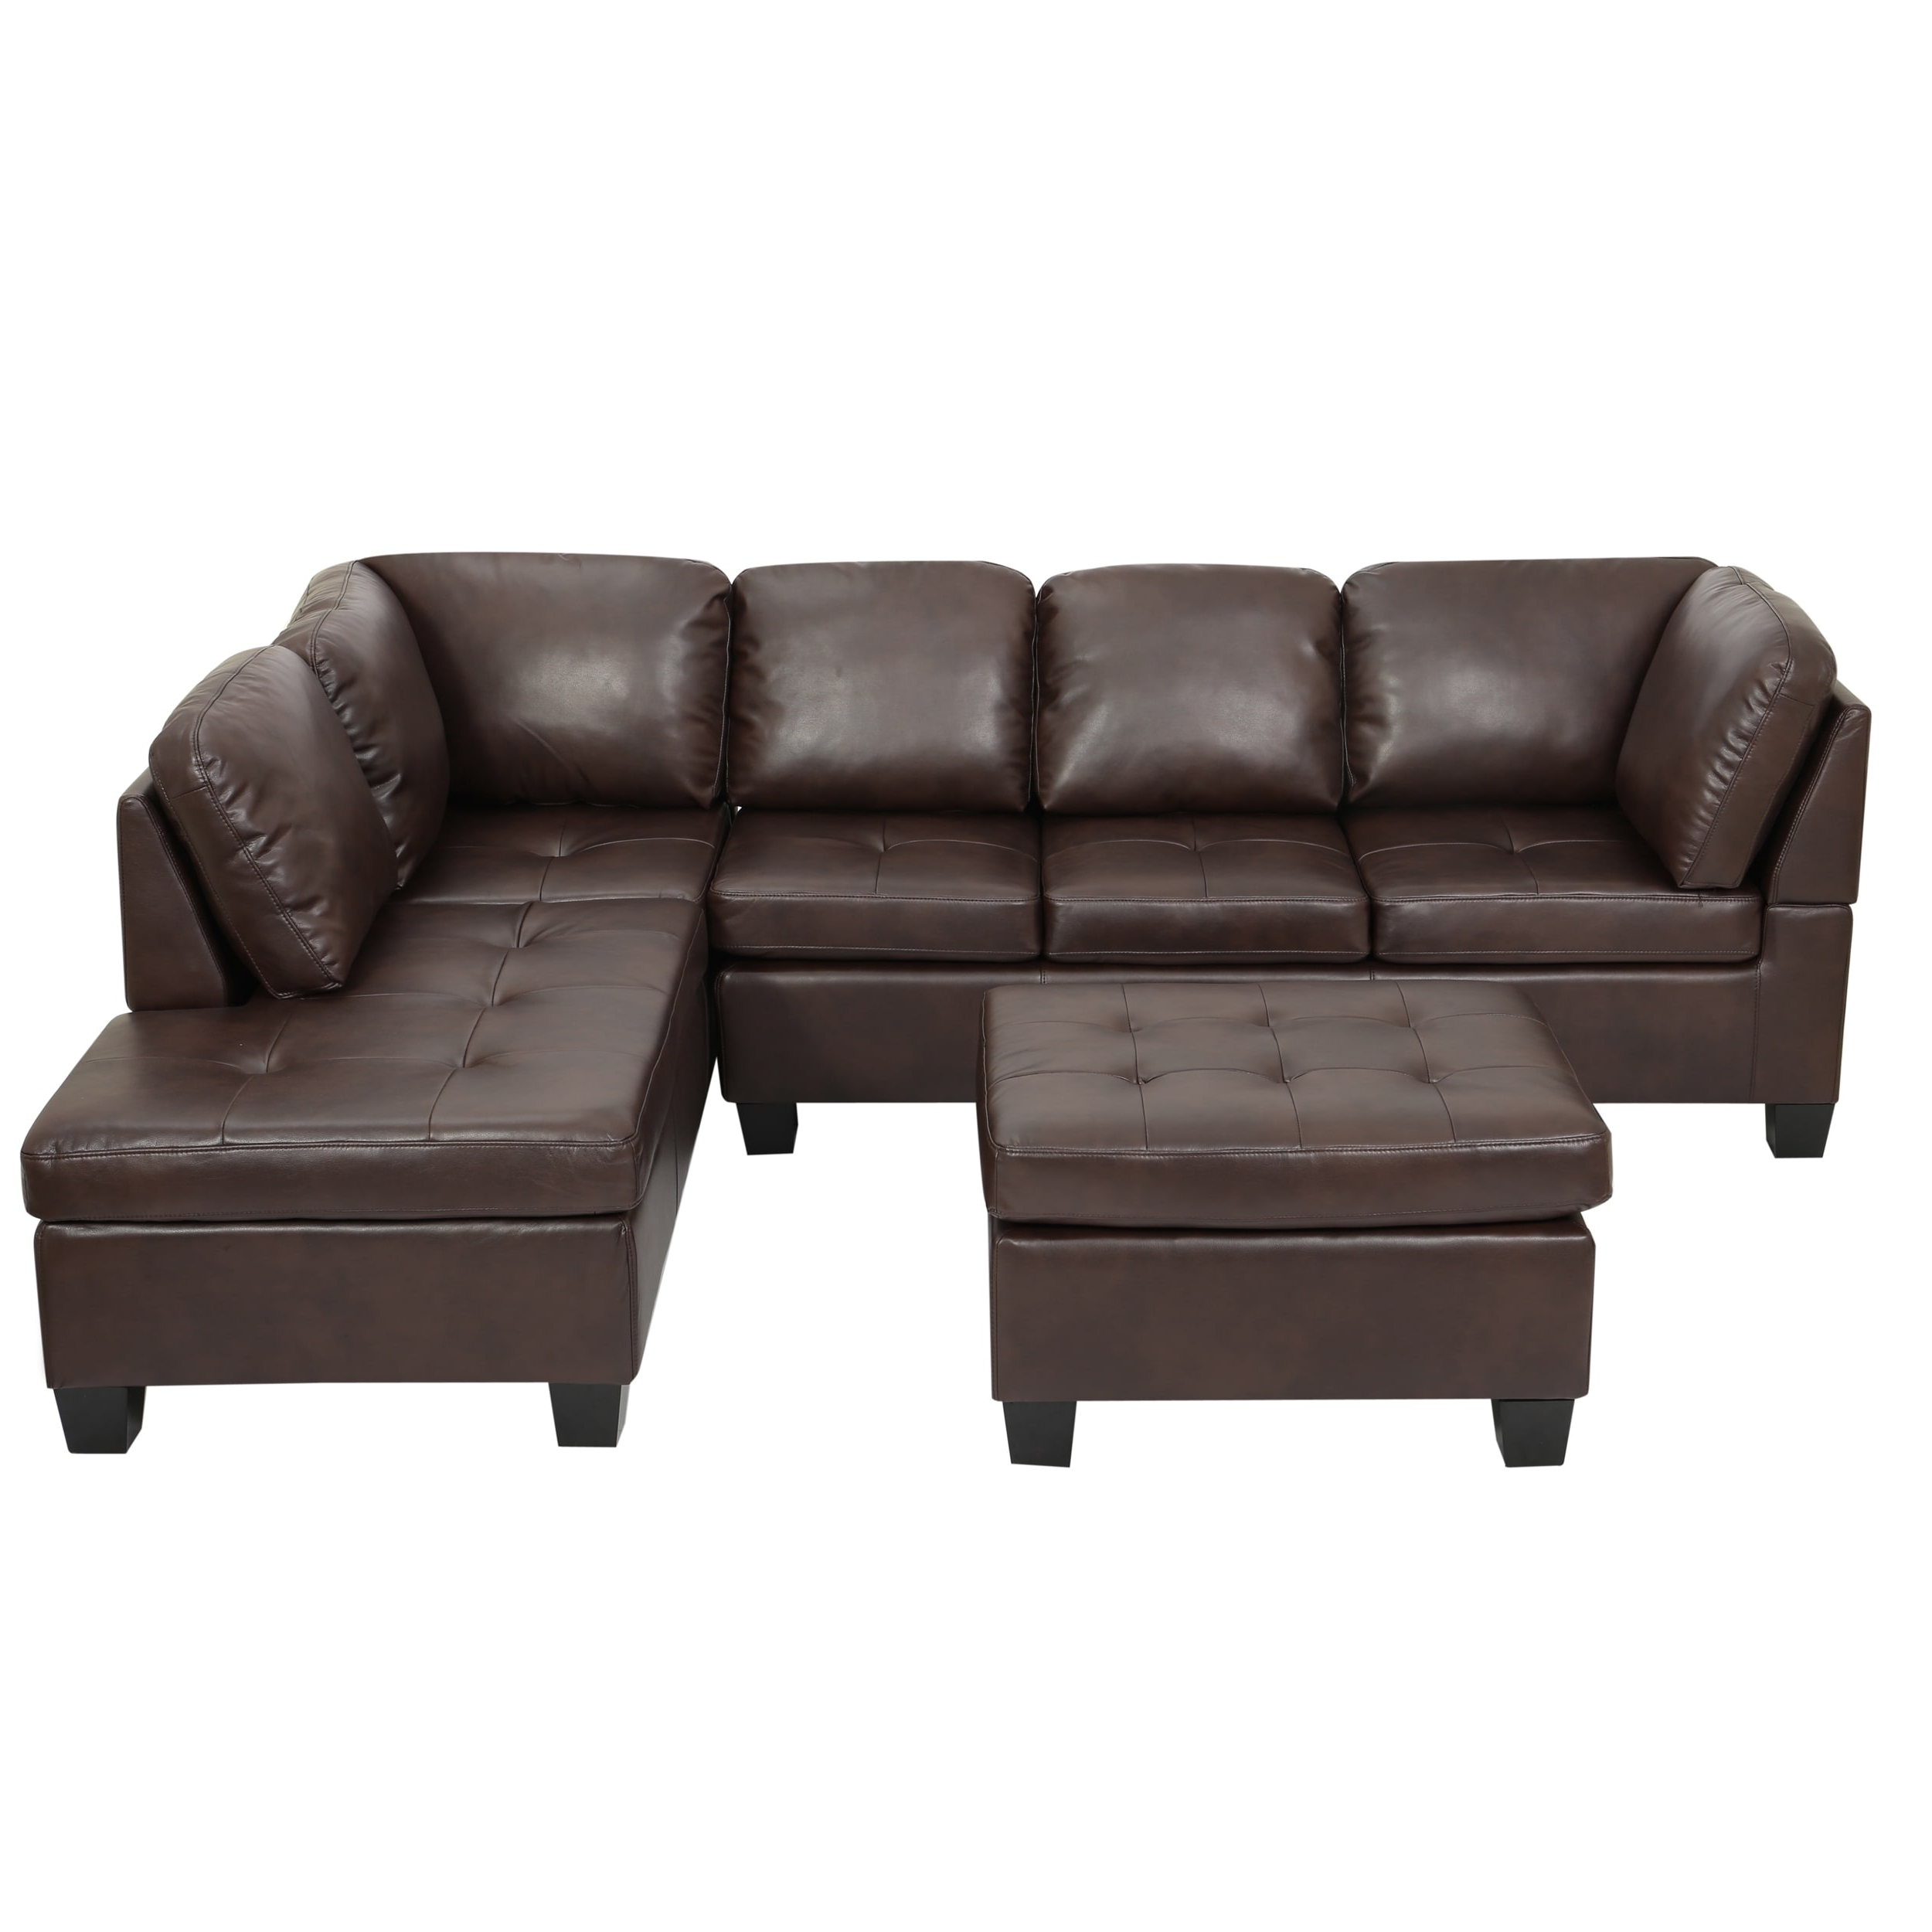 Canterbury 3 Piece Pu Leather Sectional Sofa Setchristopher Pertaining To Most Popular Canterbury Leather Sofas (View 5 of 15)